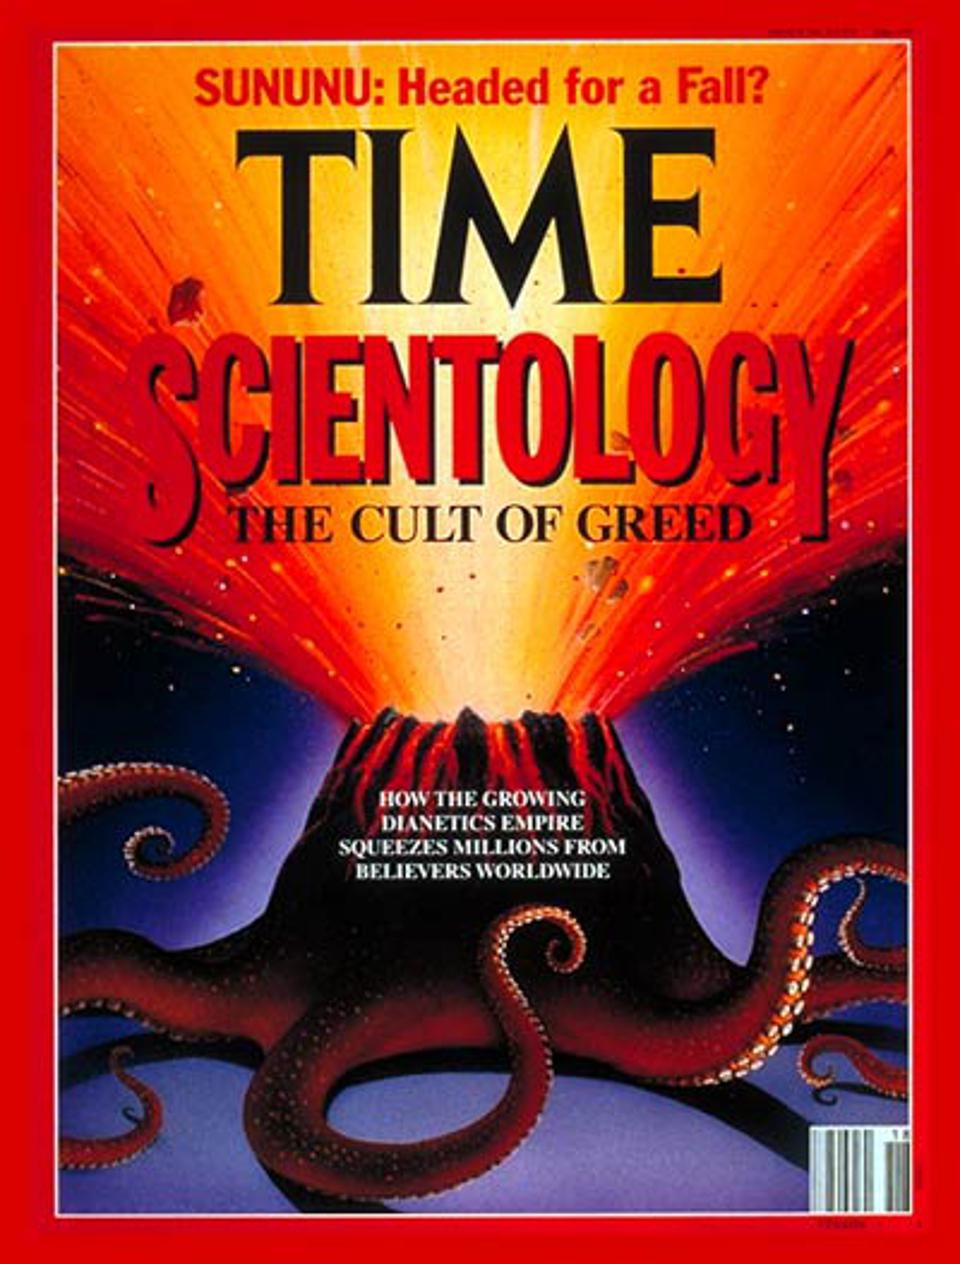 Time's 1991 ″Scientology: The Cult of Greed″ cover. In 2010, Karen Bass praised the group.